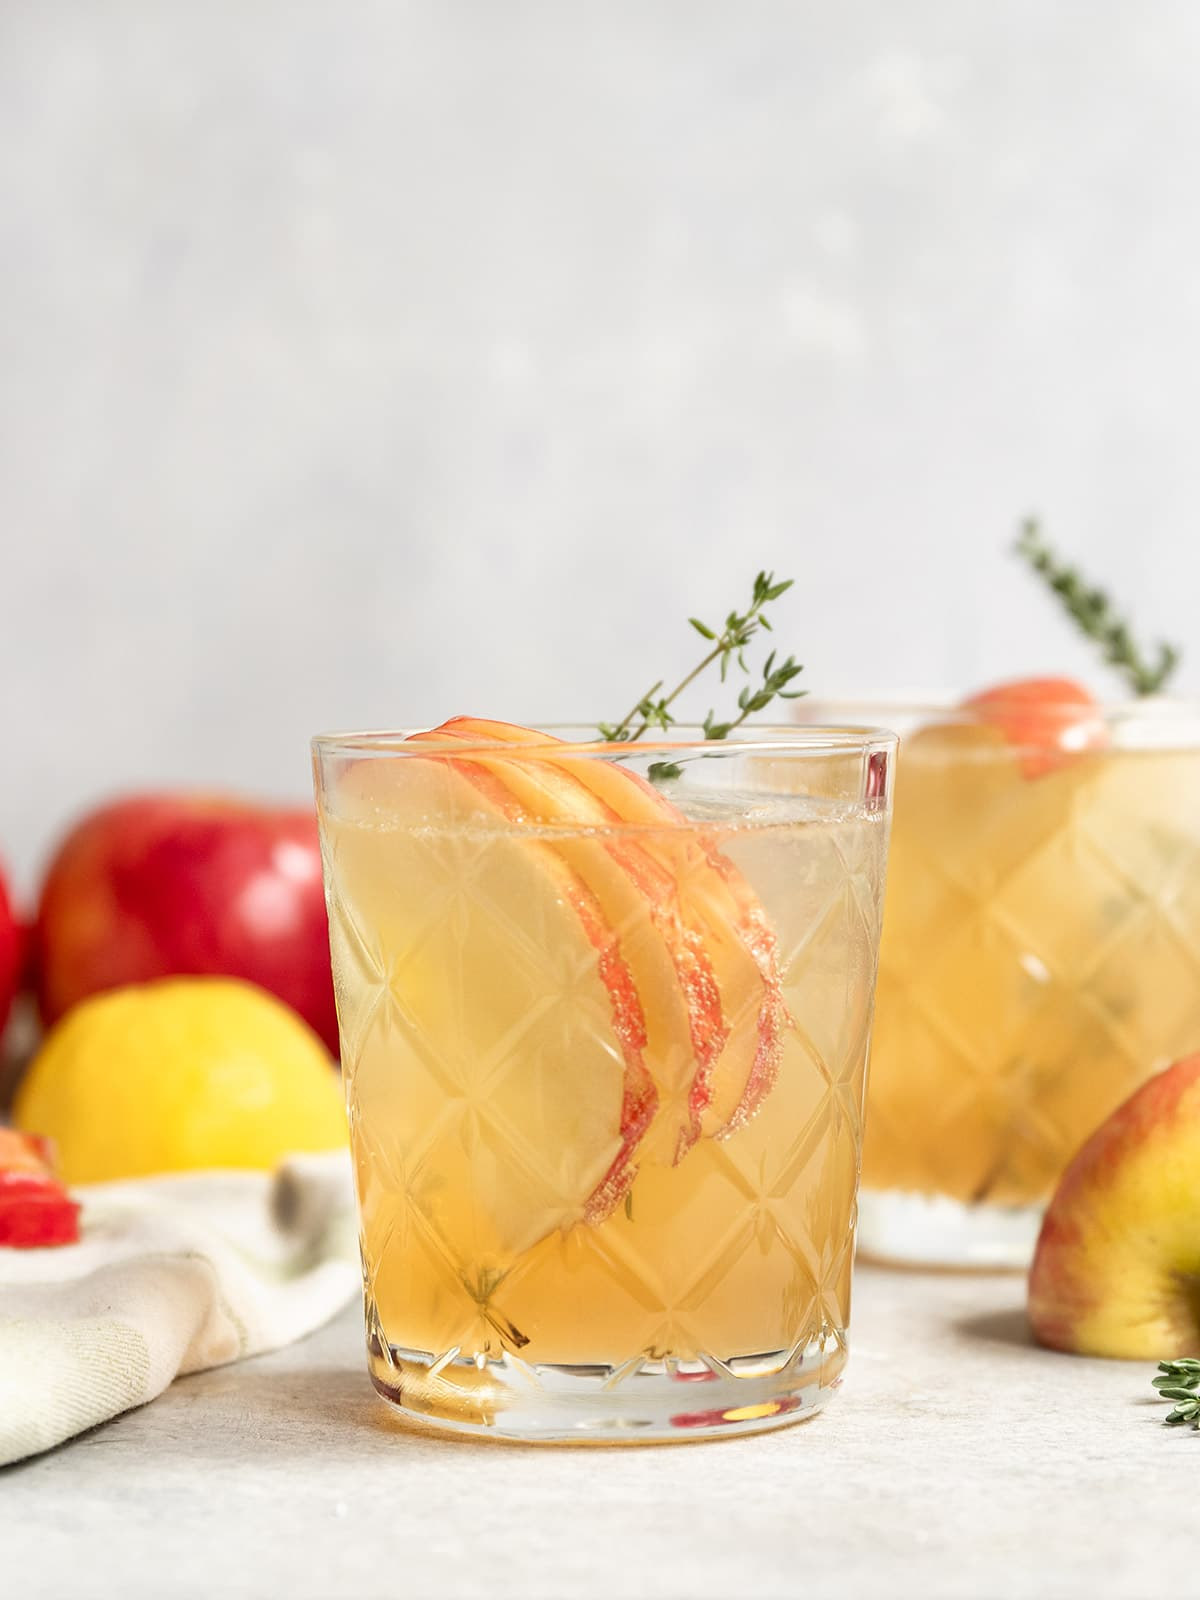 apple bourbon cocktail with apple slices and dried thyme